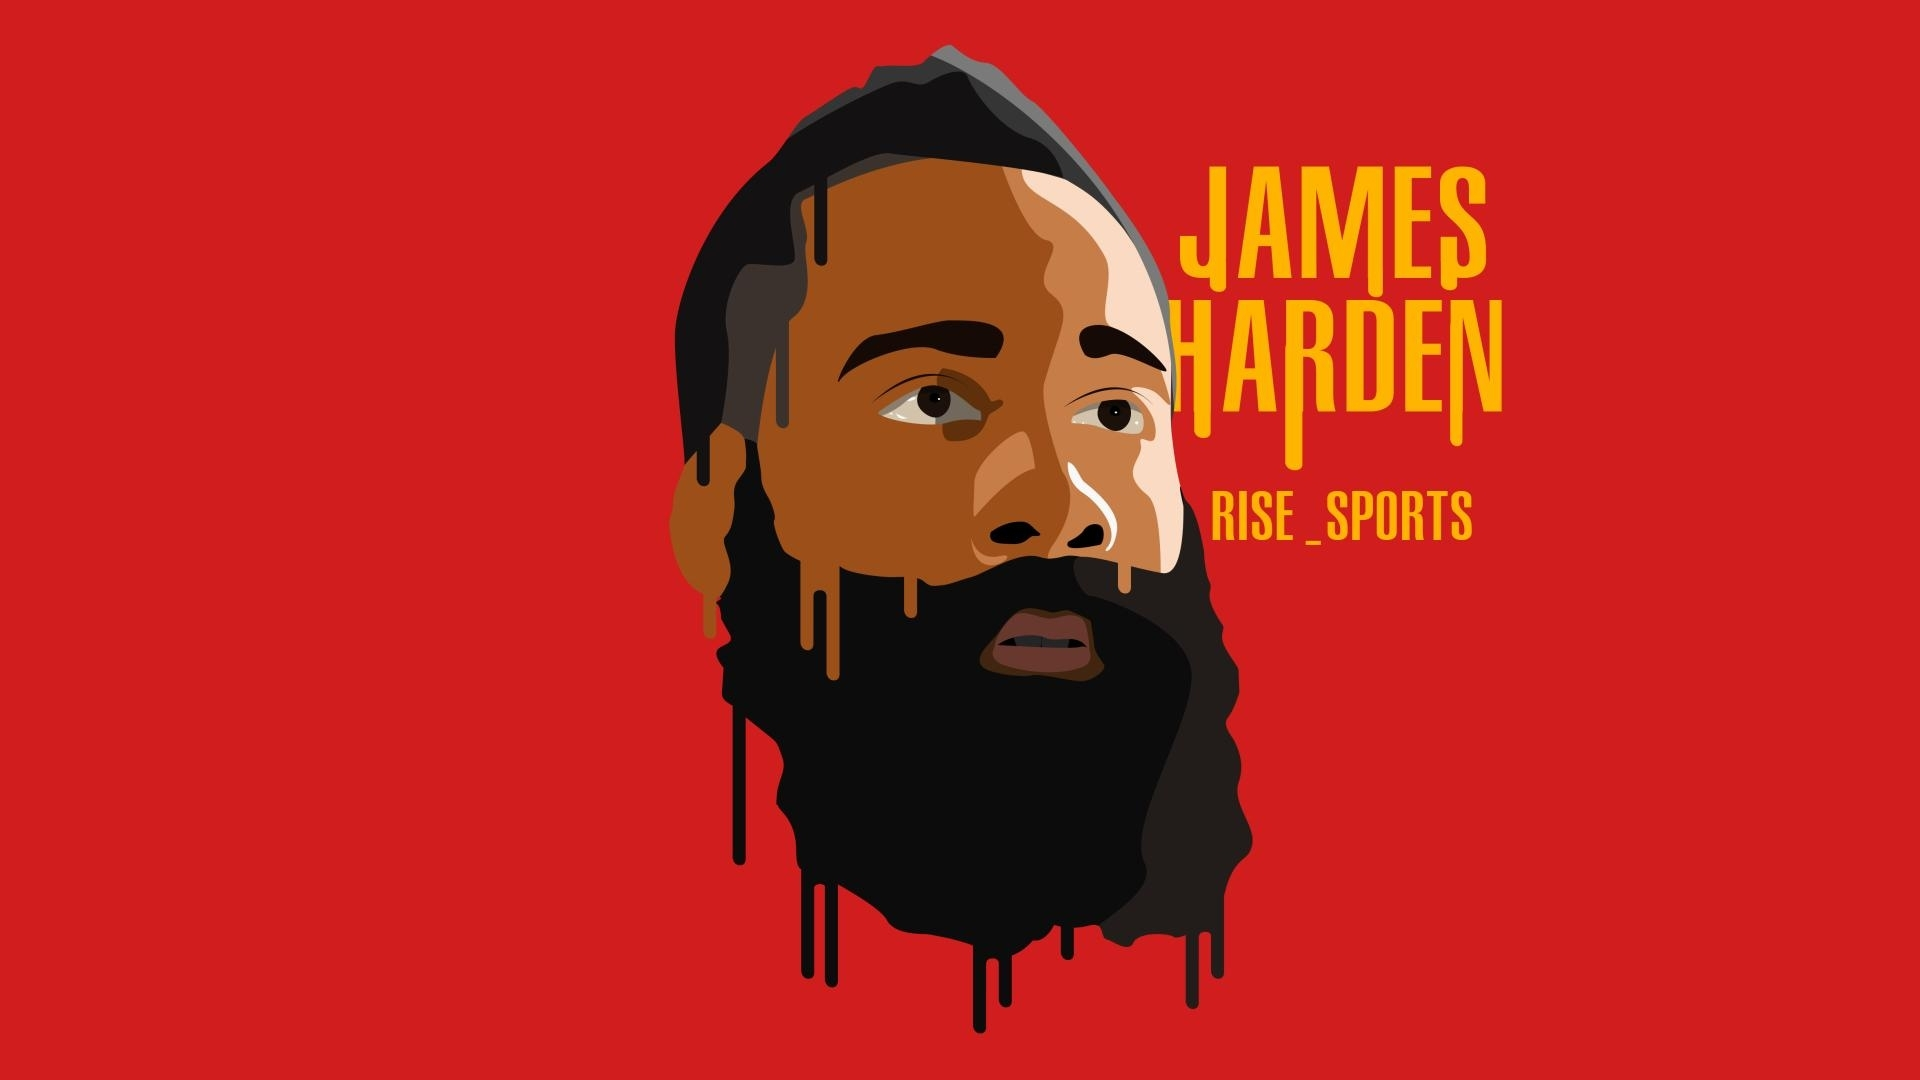 10 Top James Harden Wallpaper Hd FULL HD 1920×1080 For PC ...